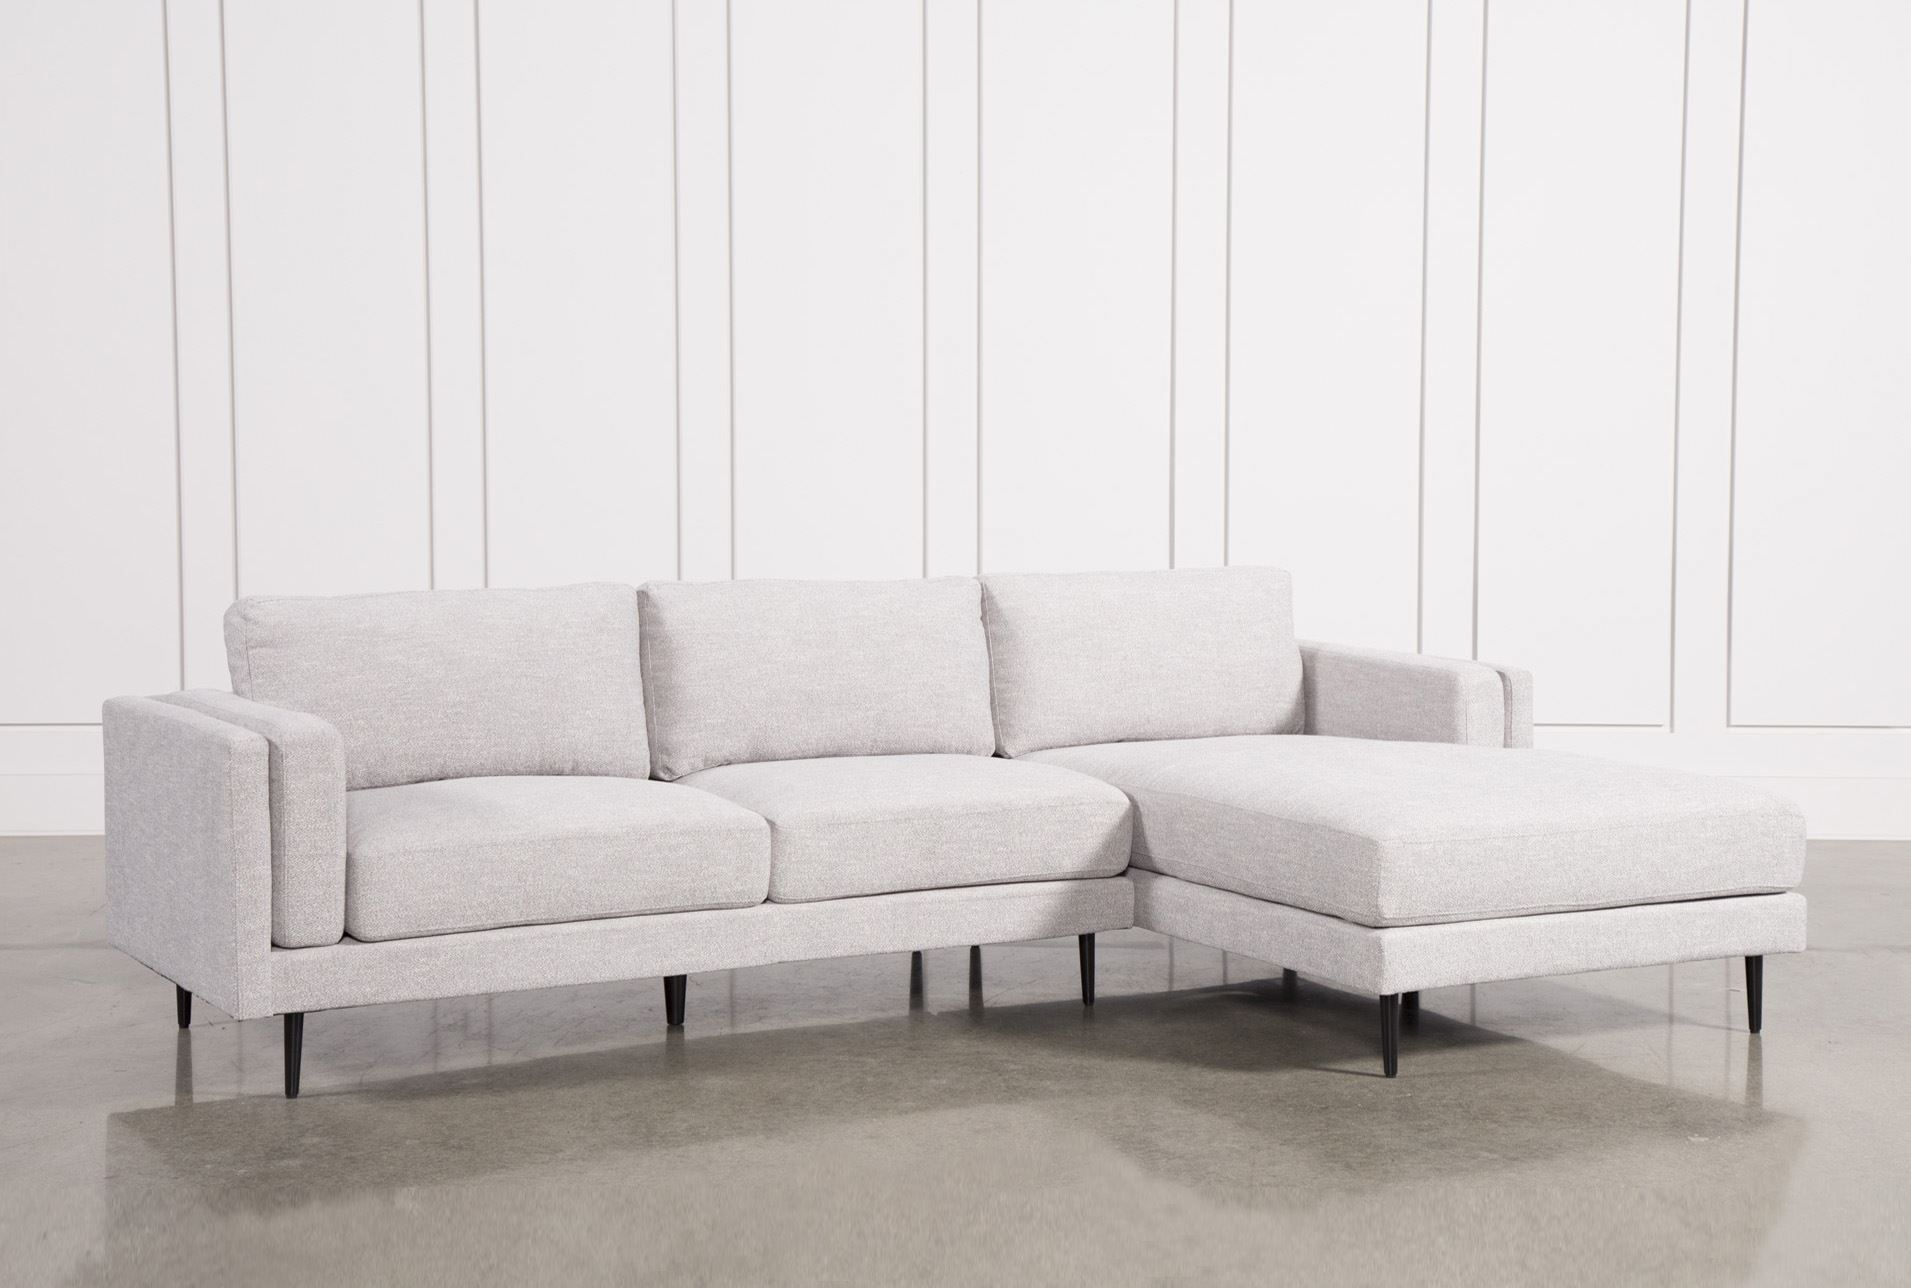 Aquarius Light Grey 2 Piece Sectional W/raf Chaise, Sofas Inside Cosmos Grey 2 Piece Sectionals With Raf Chaise (View 4 of 25)